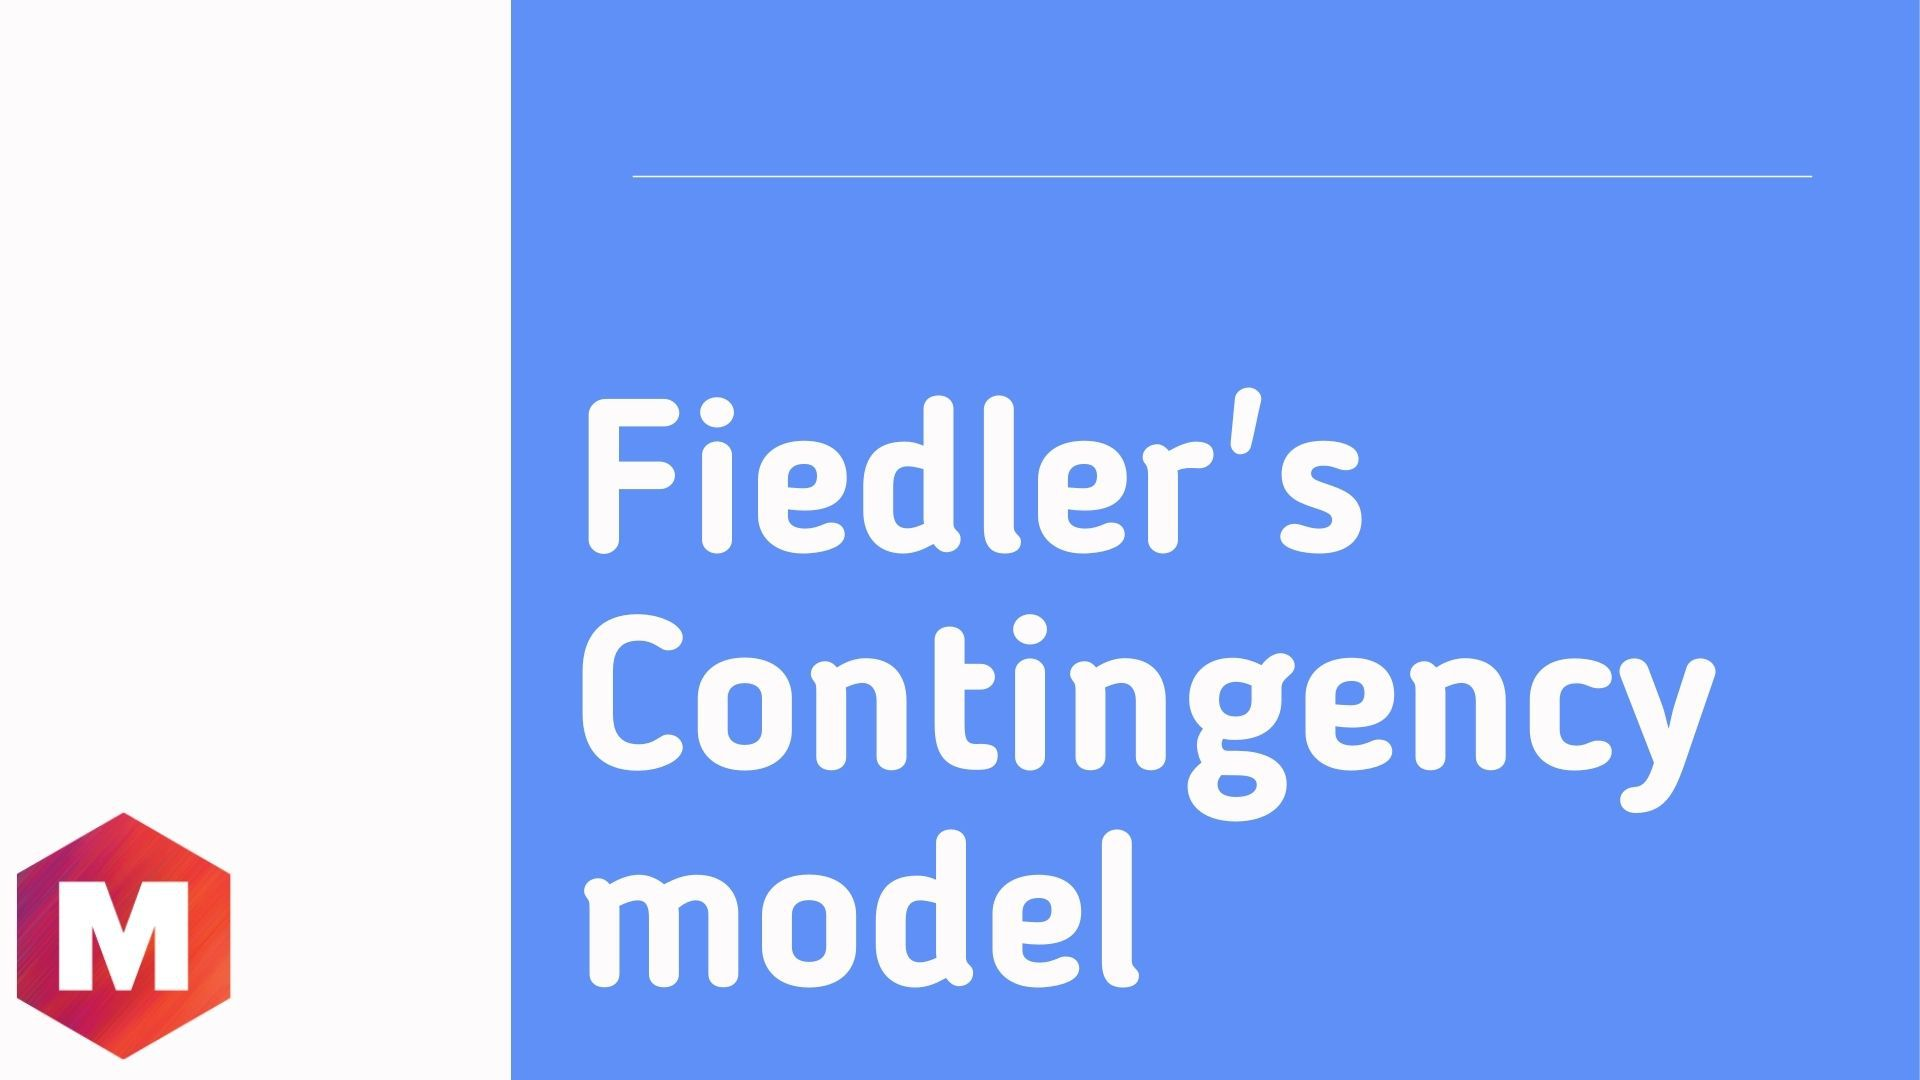 Fiedler_s Contingency model